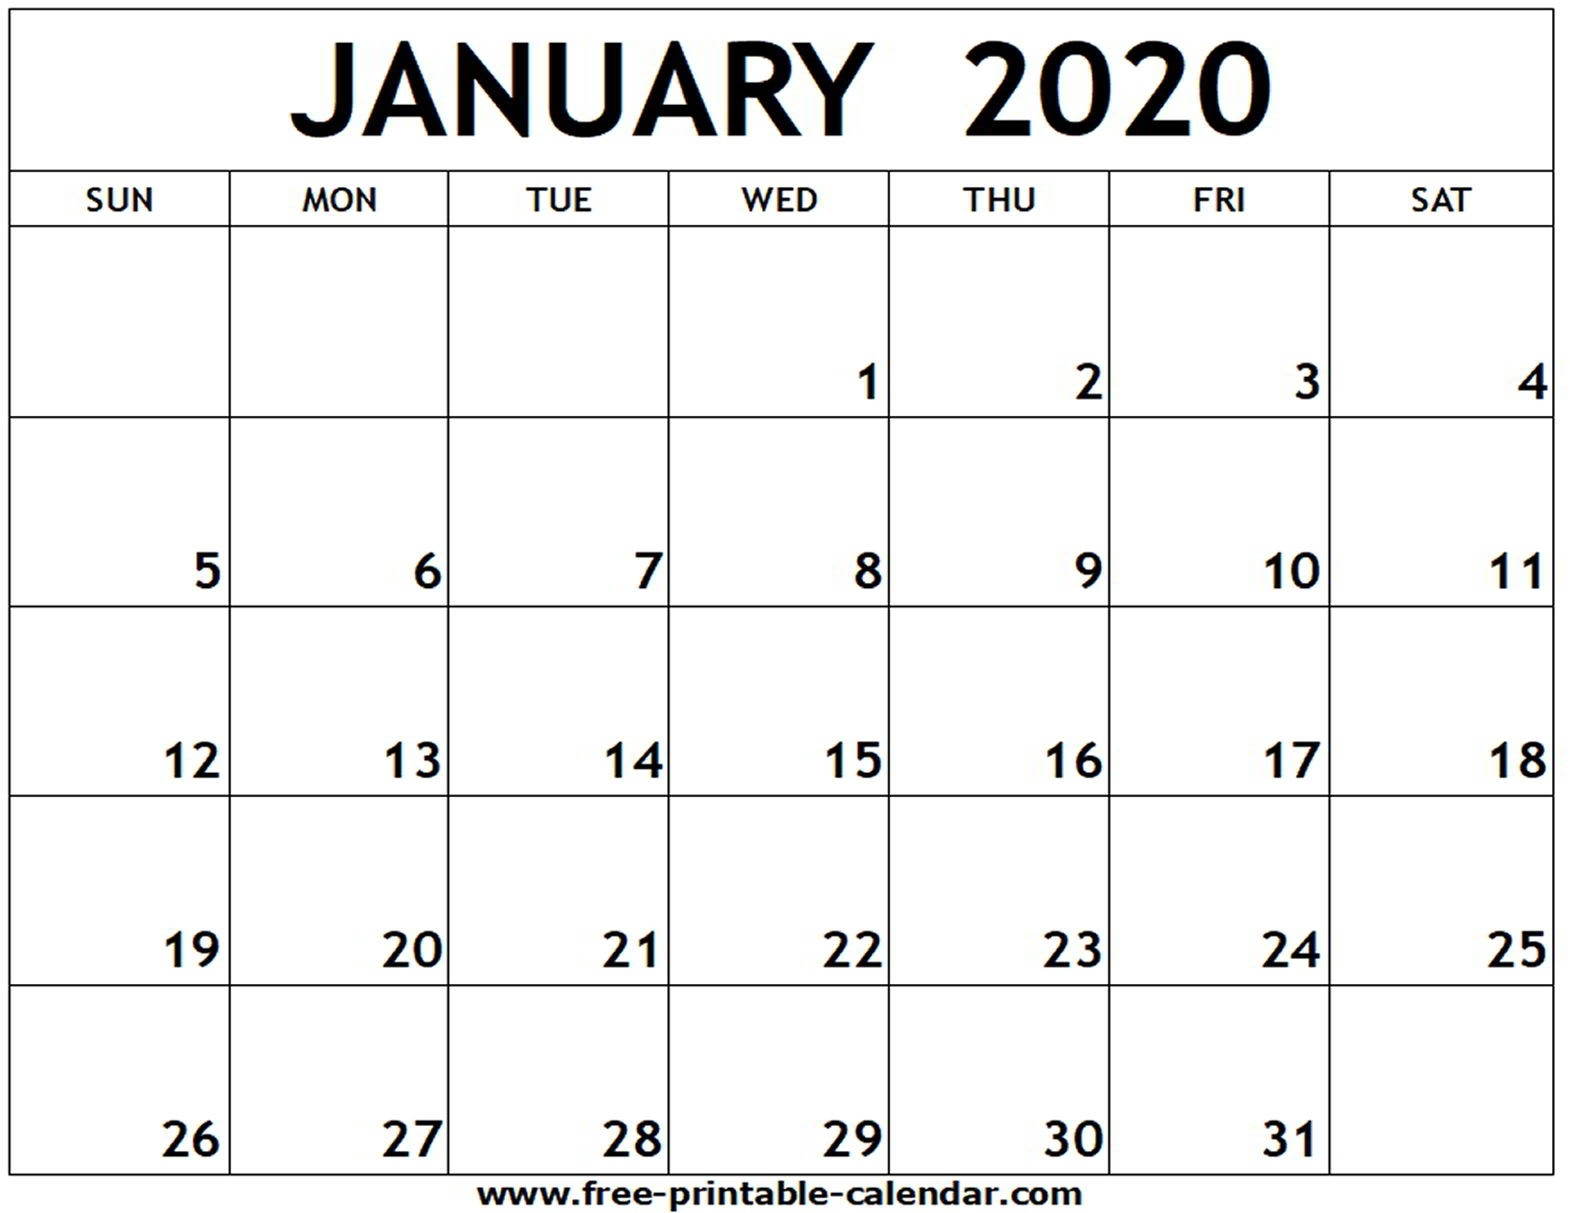 January 2020 Printable Calendar - Free-Printable-Calendar-January 2020 Calendar With Notes